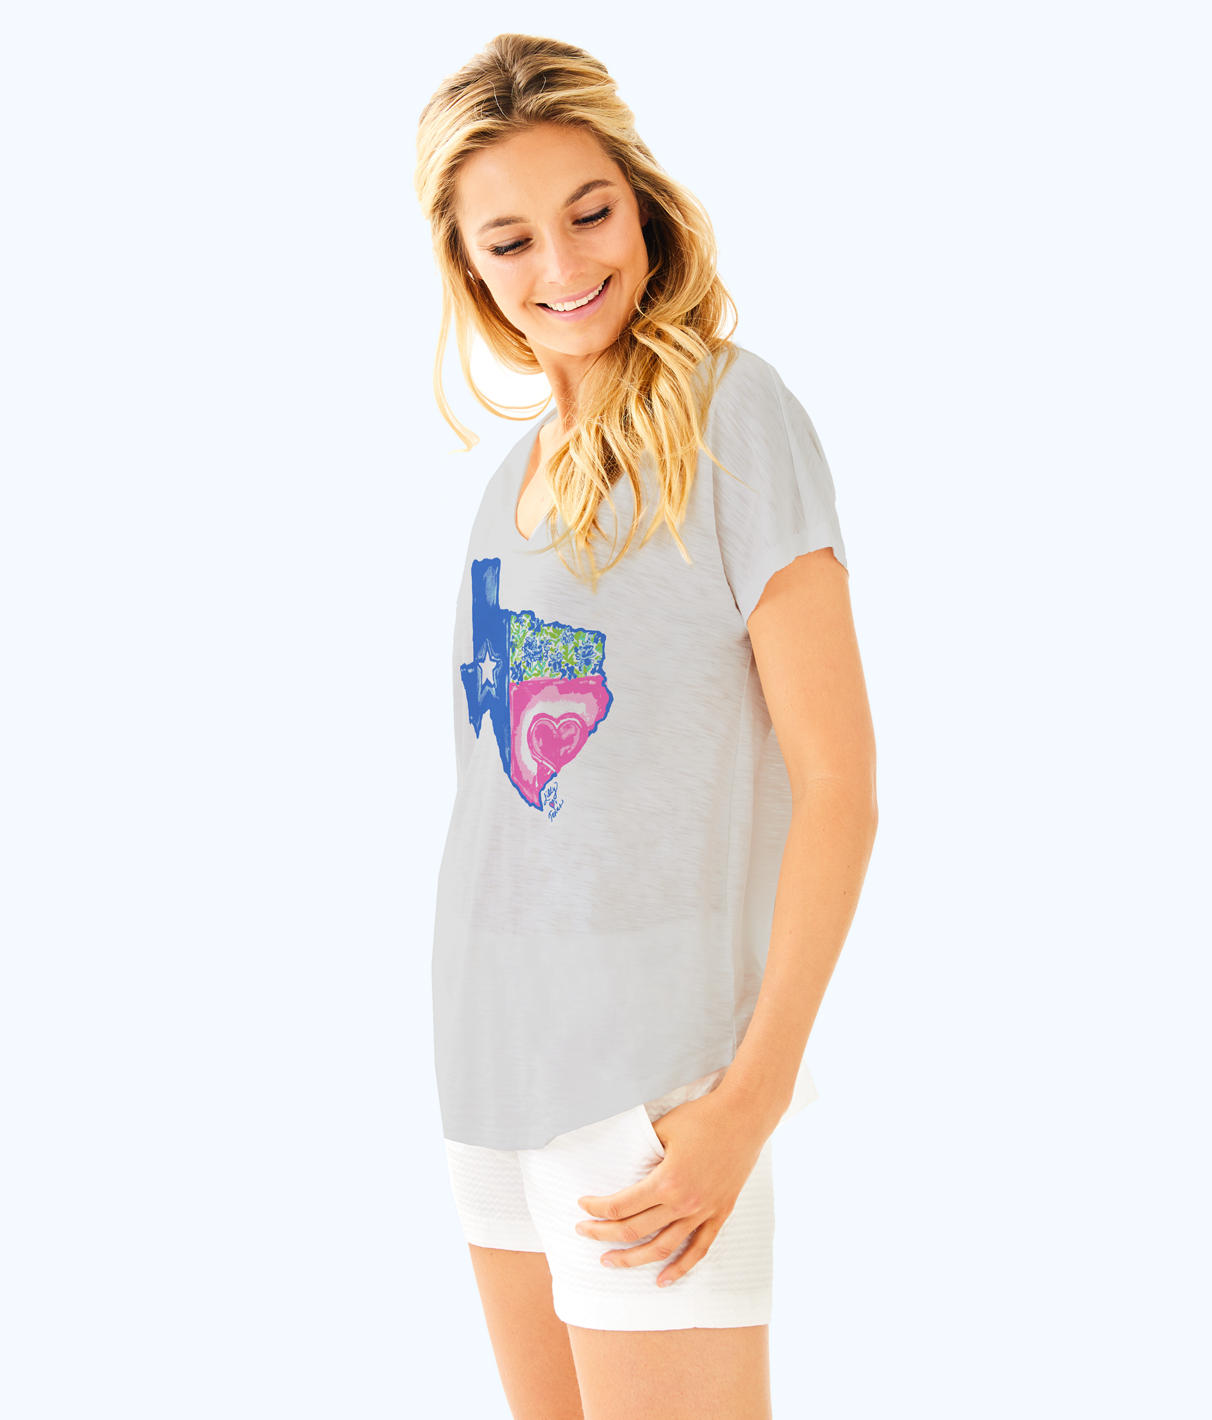 Lilly Pulitzer Lilly Pulitzer Womens Lilly Loves Texas Colie Top